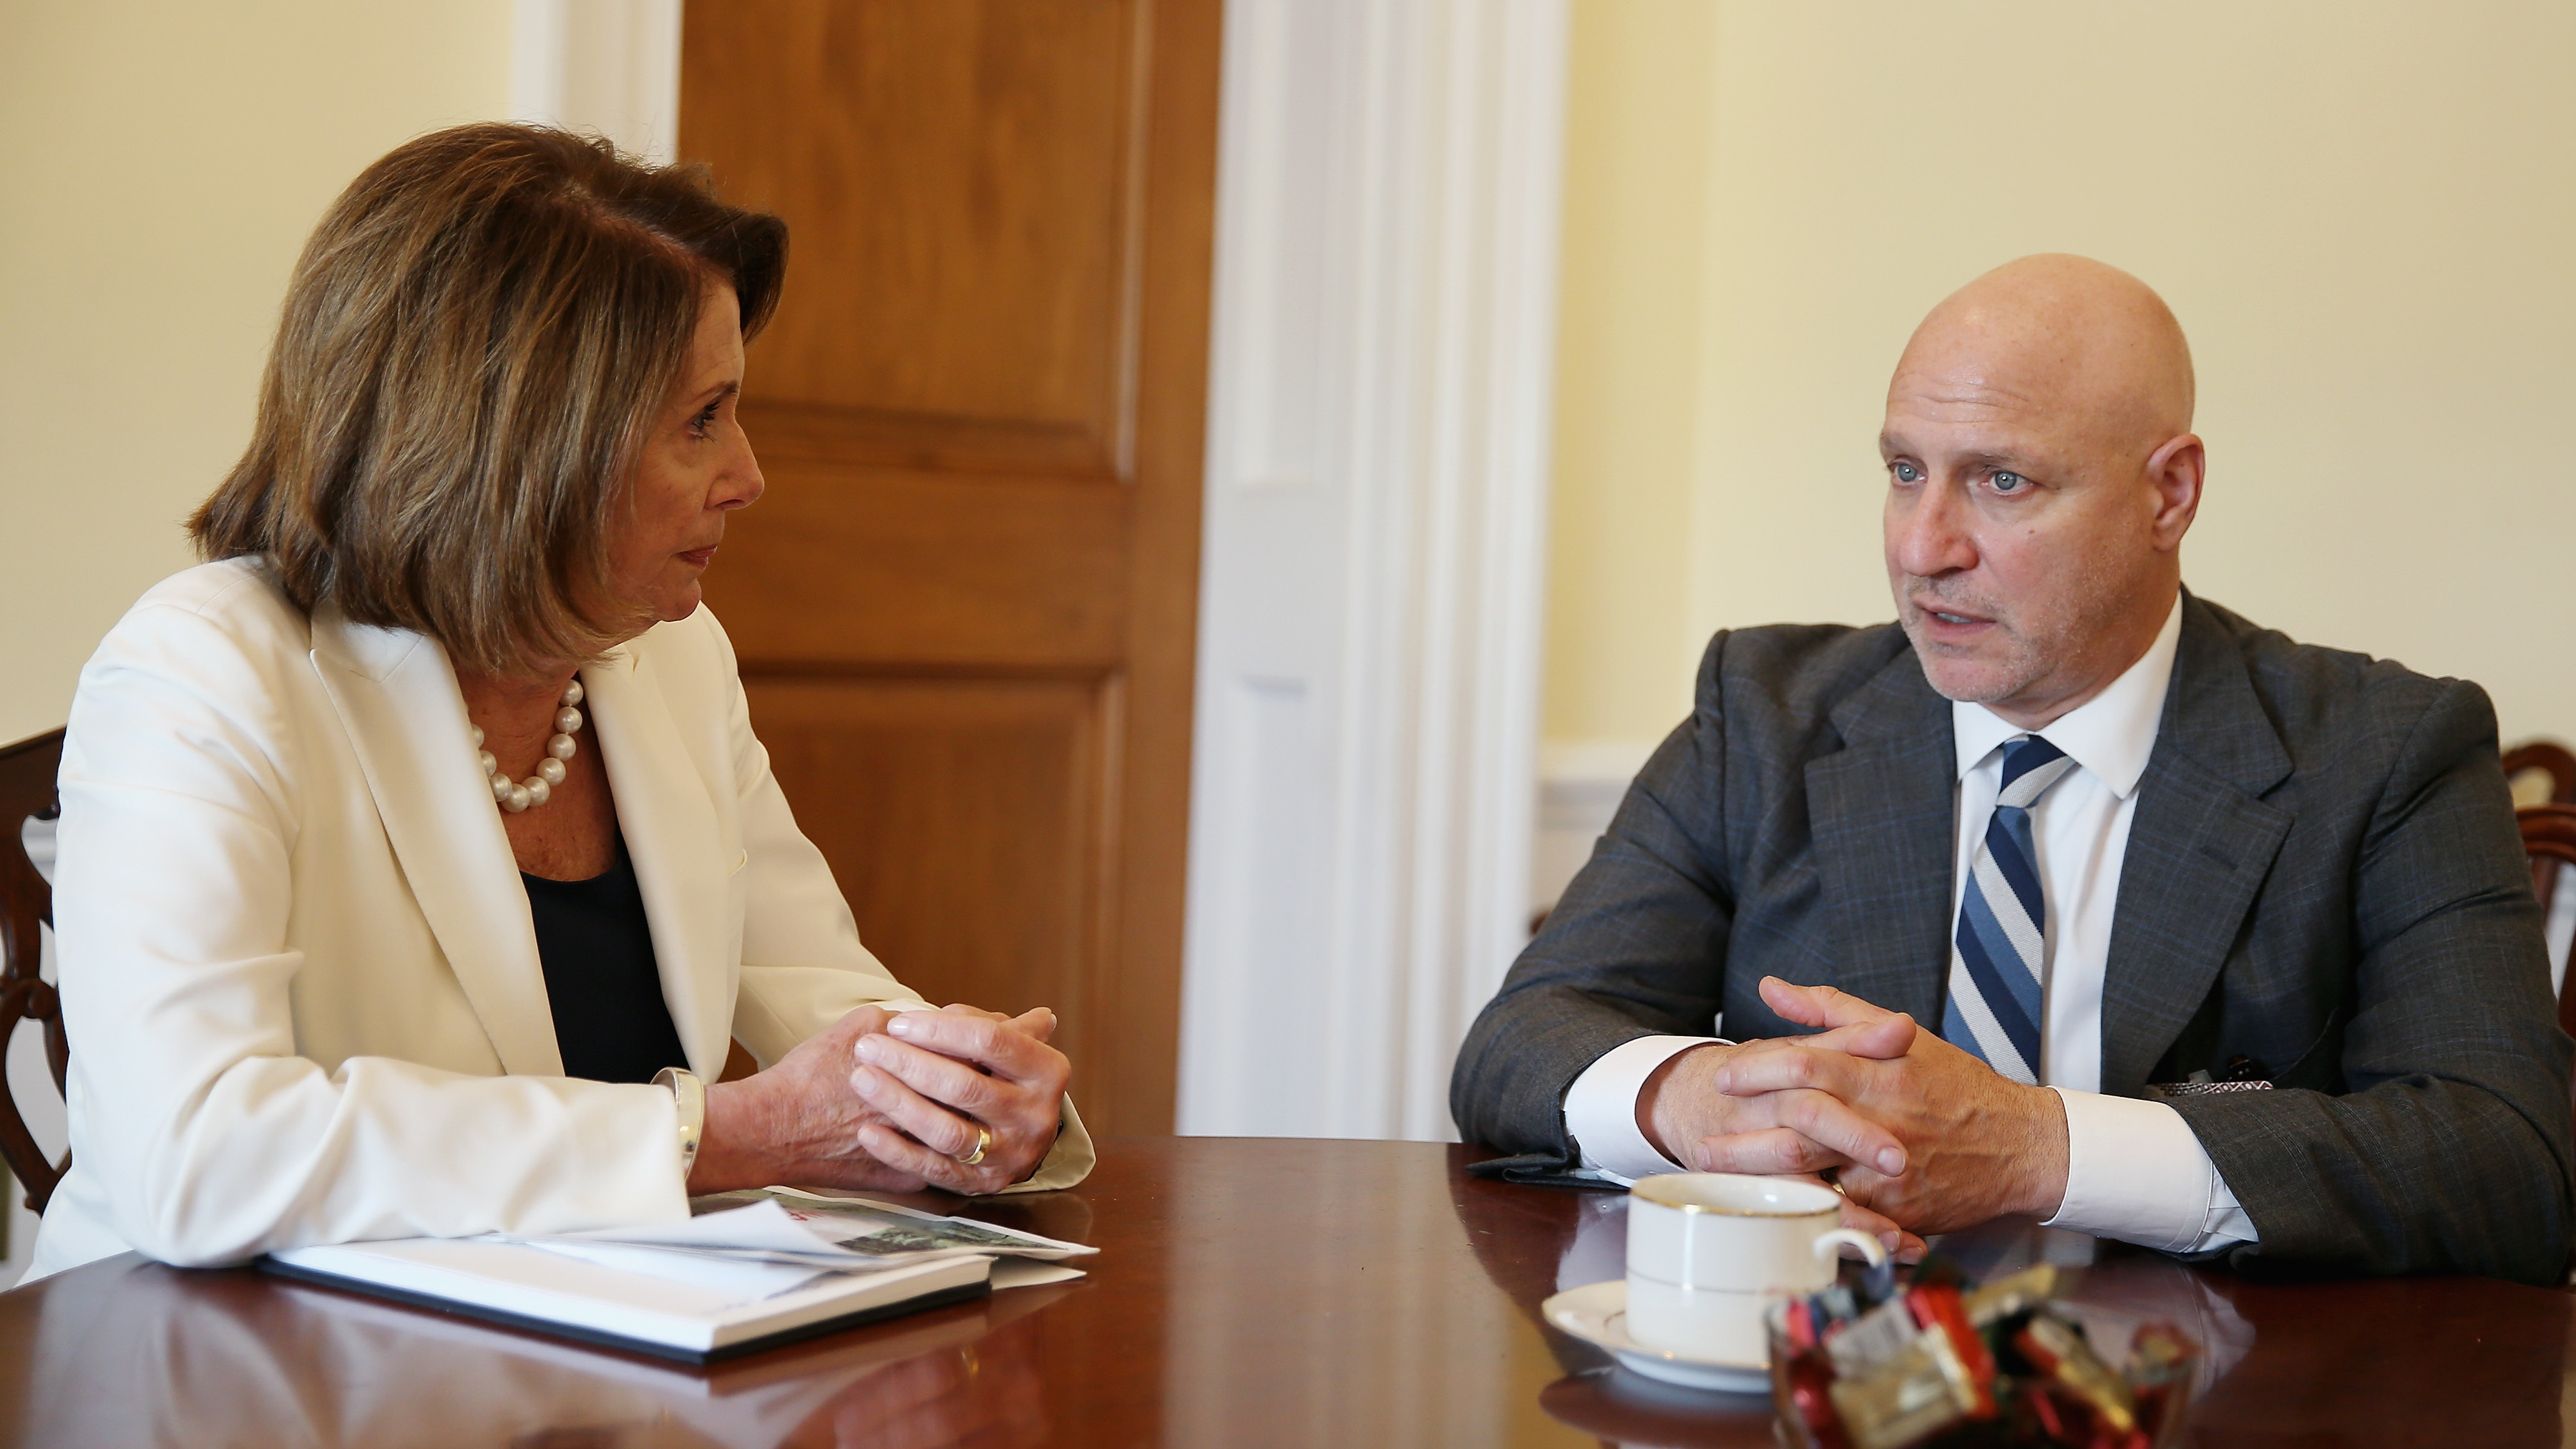 House of Representatives minority leader Nancy Pelosi and celebrity chef Tom Colicchio discuss the farm bill as part of the Plate of the Union campaign, April 27, 2017, in Washington, D.C.